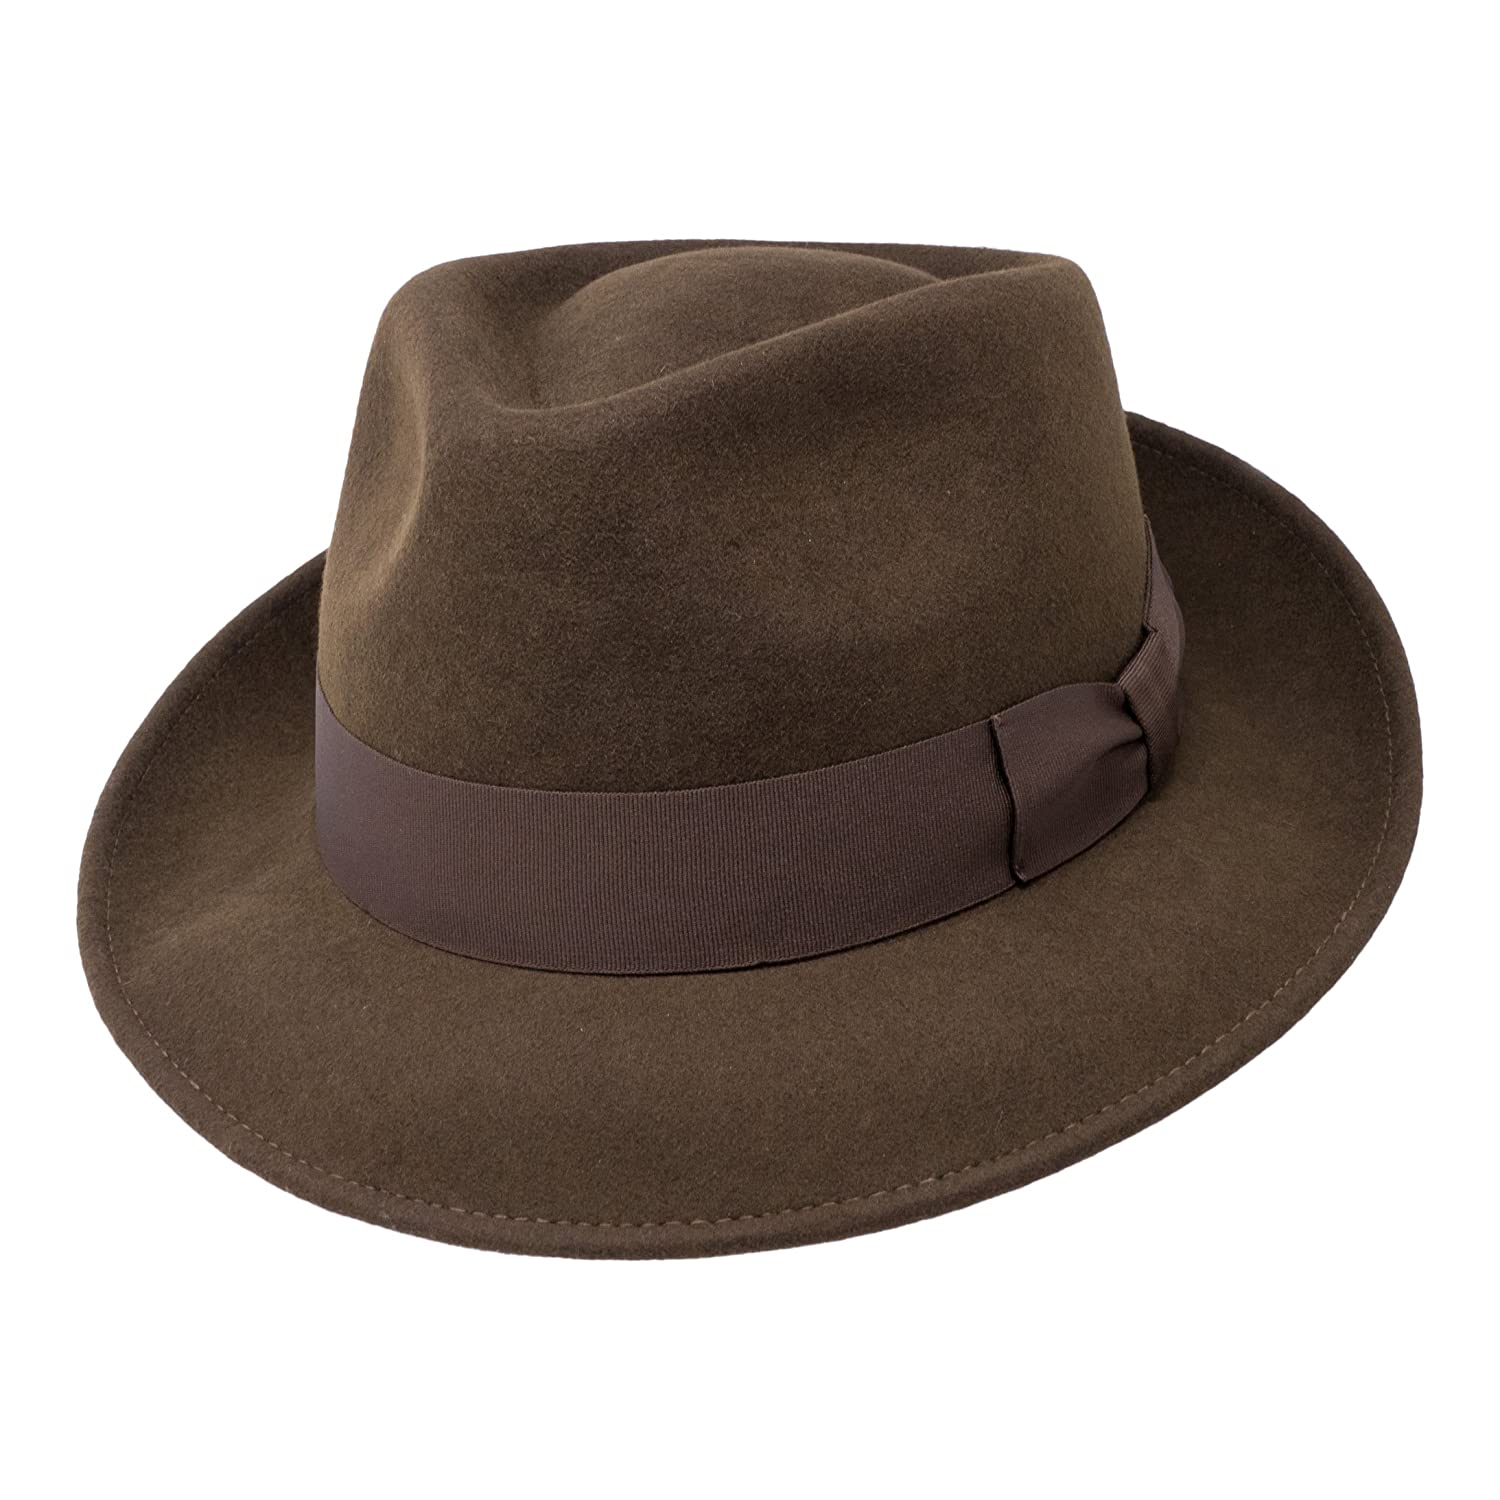 Men's Vintage Style Hats Borges & Scott B&S Premium Doyle - Teardrop Fedora Hat - 100% Wool Felt - Crushable for Travel - Water Resistant - Unisex £34.95 AT vintagedancer.com